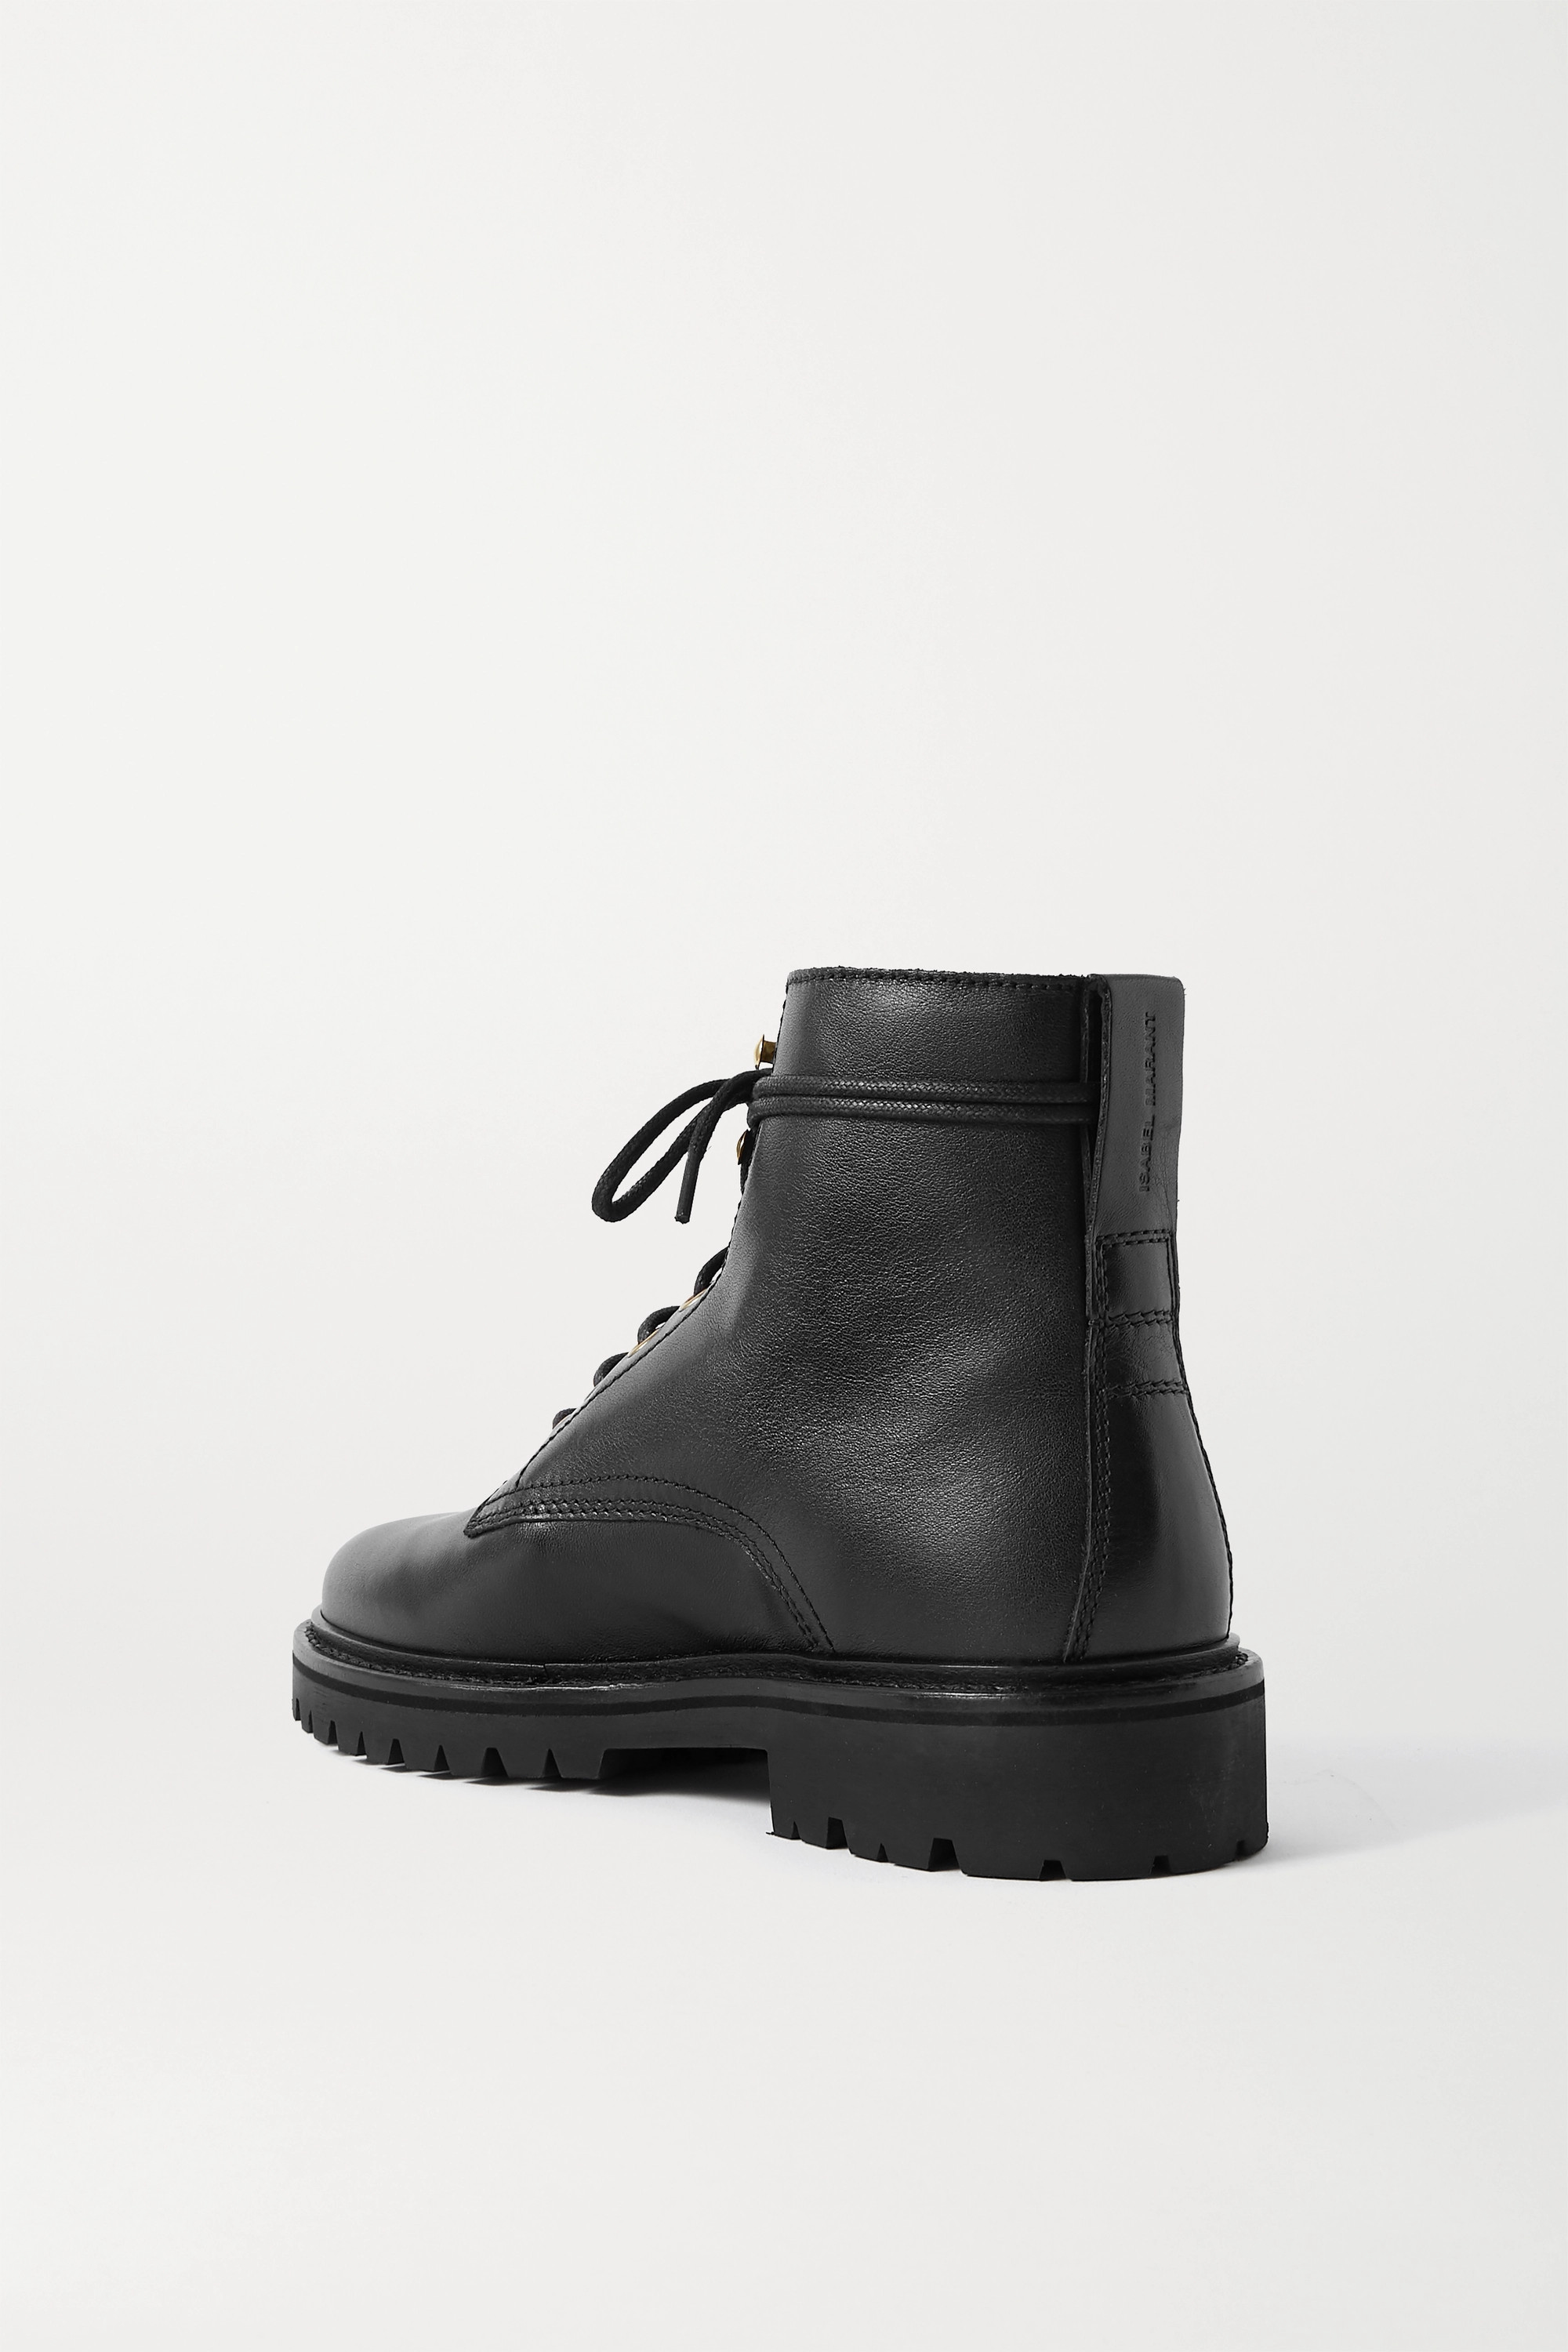 Isabel Marant Campee leather ankle boots